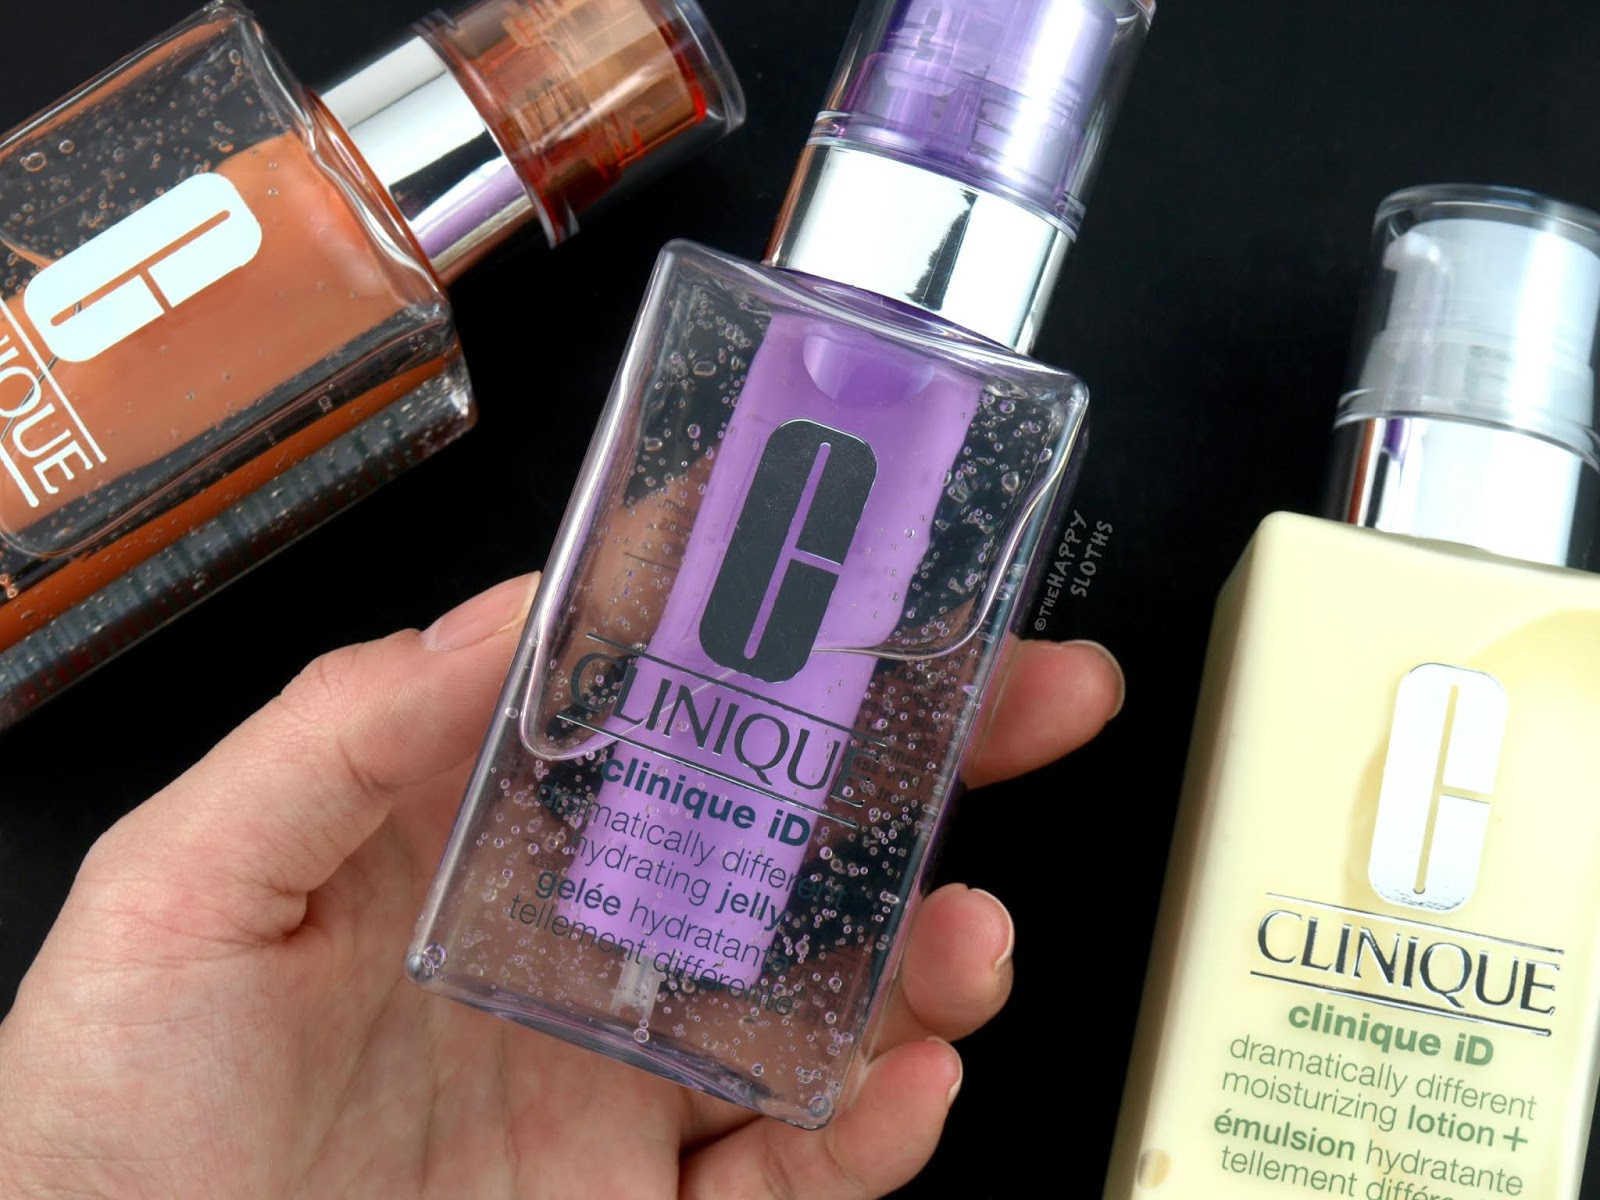 Clinique | Clinique iD™ Custom-Blend Hydrators | Dramatically Different Jelly + Lines & Wrinkles Cartridge: Review